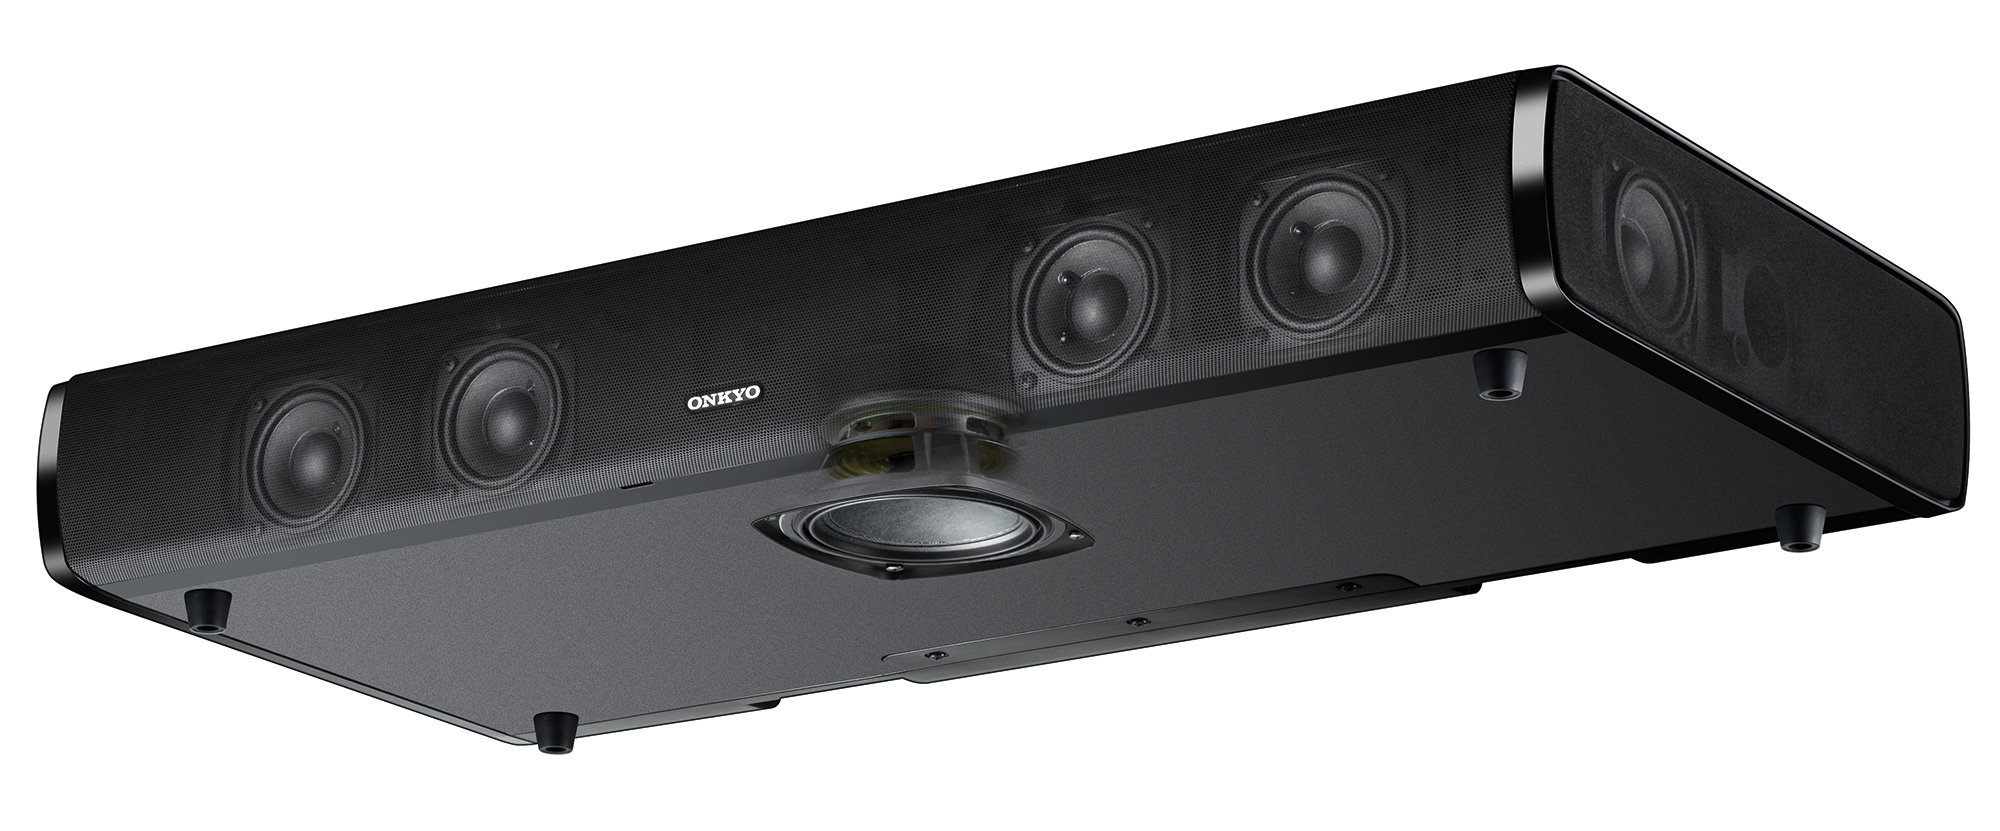 onkyo ls t10 6 1 channel 3d surround base system electronics. Black Bedroom Furniture Sets. Home Design Ideas